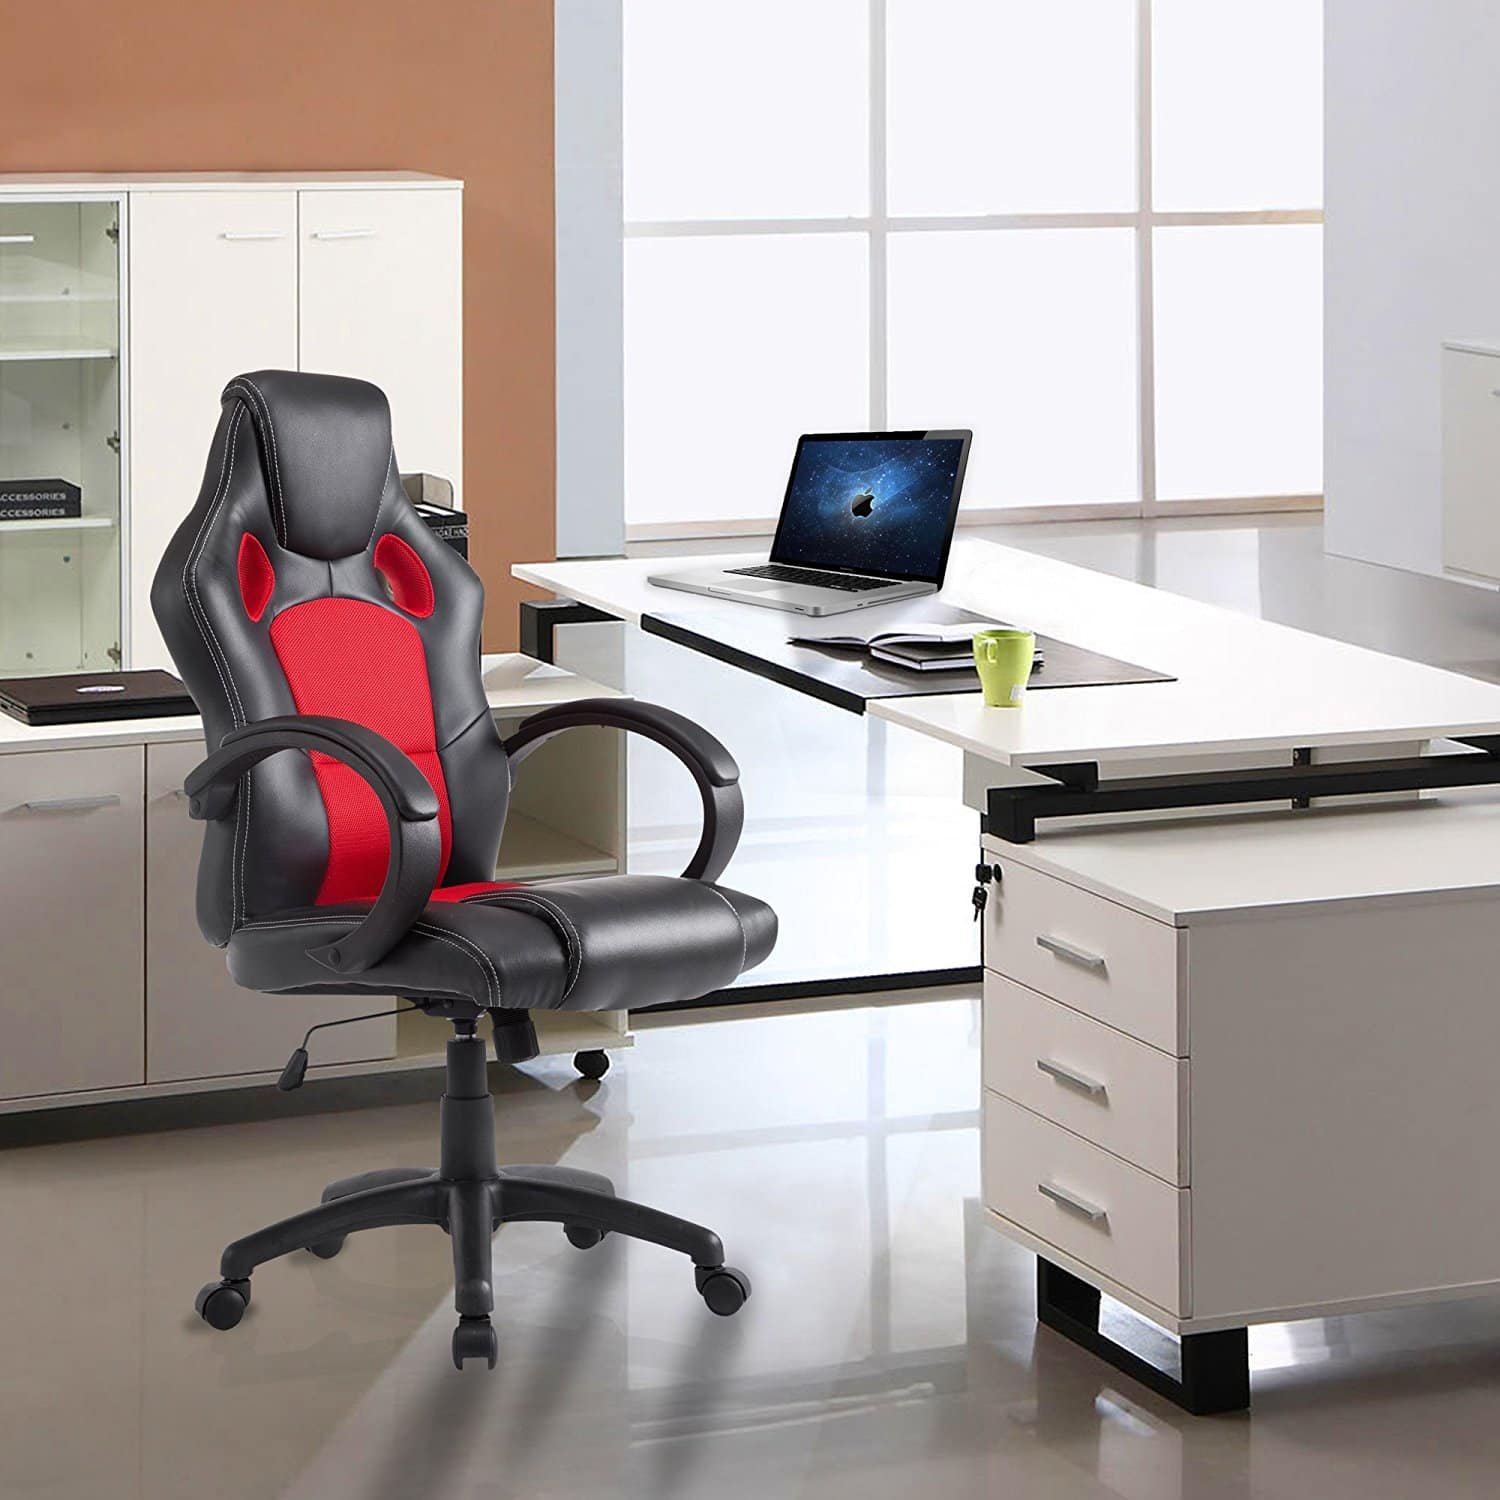 acepro office desk ergonomic racing gaming swivel adjustable chair